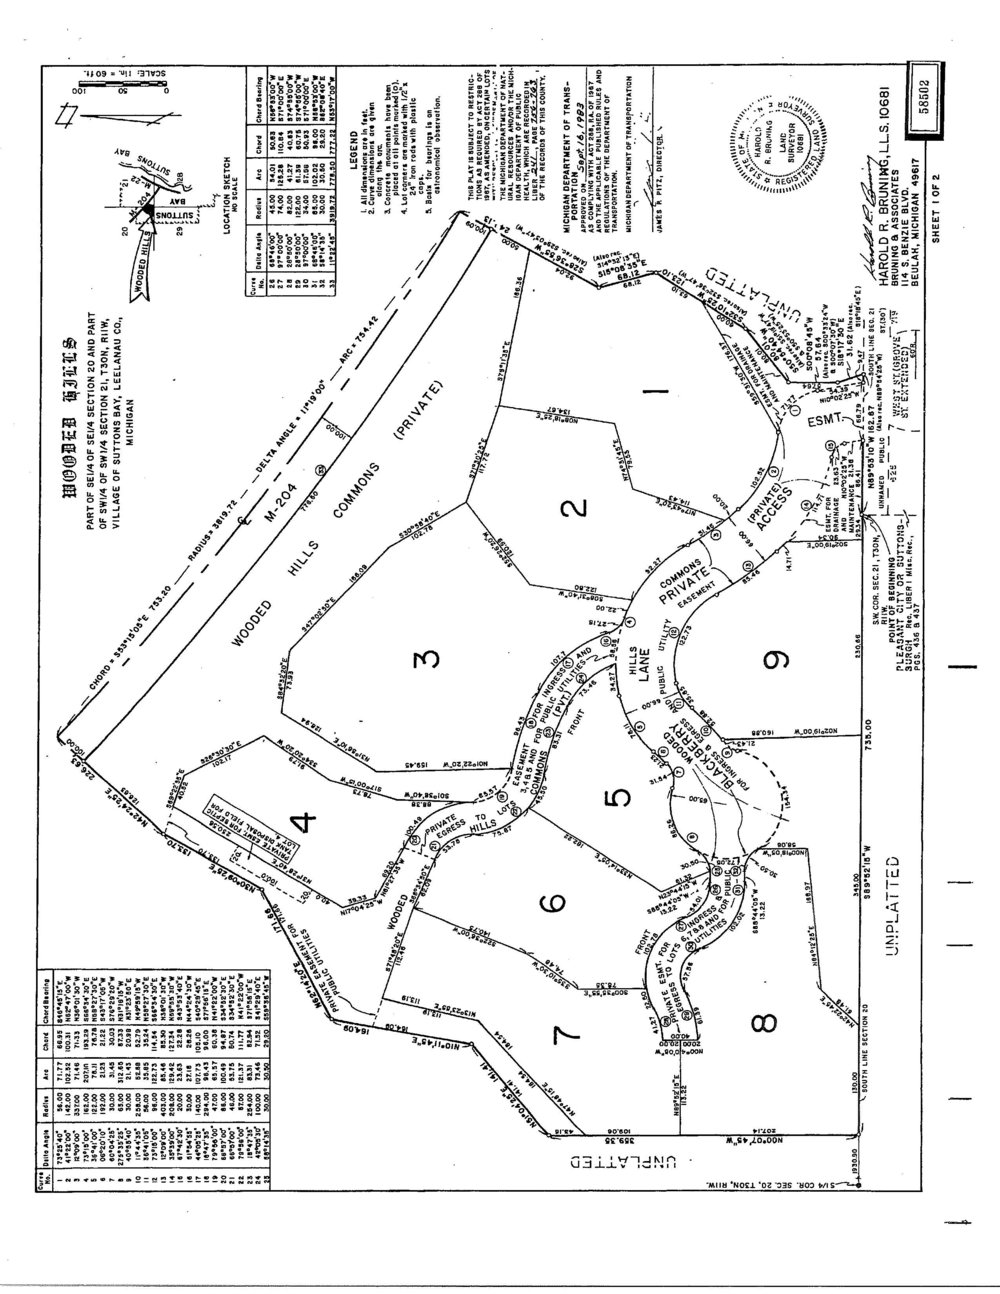 Lot 4 W Blackberry Ln, Suttons Bay - Information Packet_Page_34.jpg